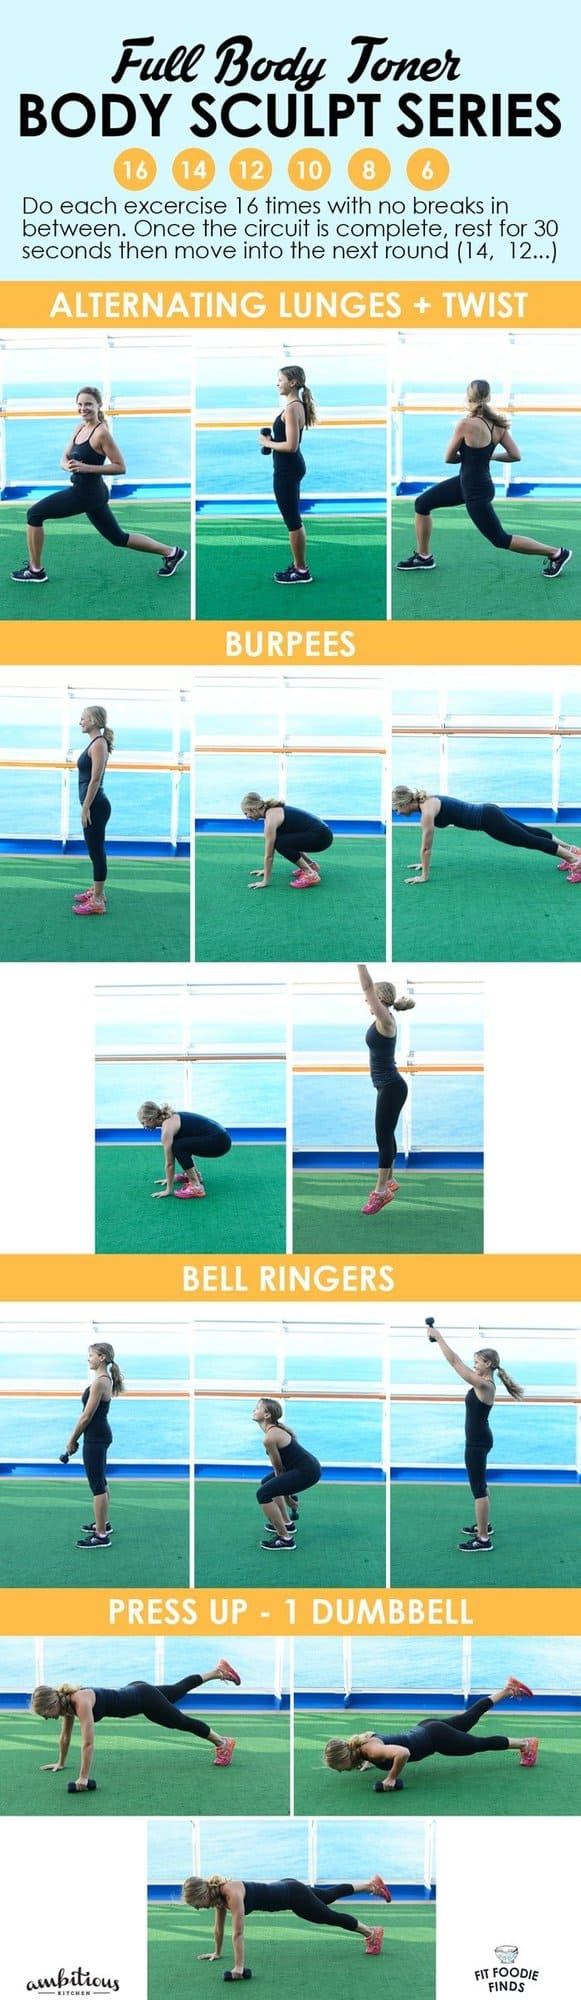 Got a dumb bell? Do this Full Body Toner Workout that'll work your entire body!